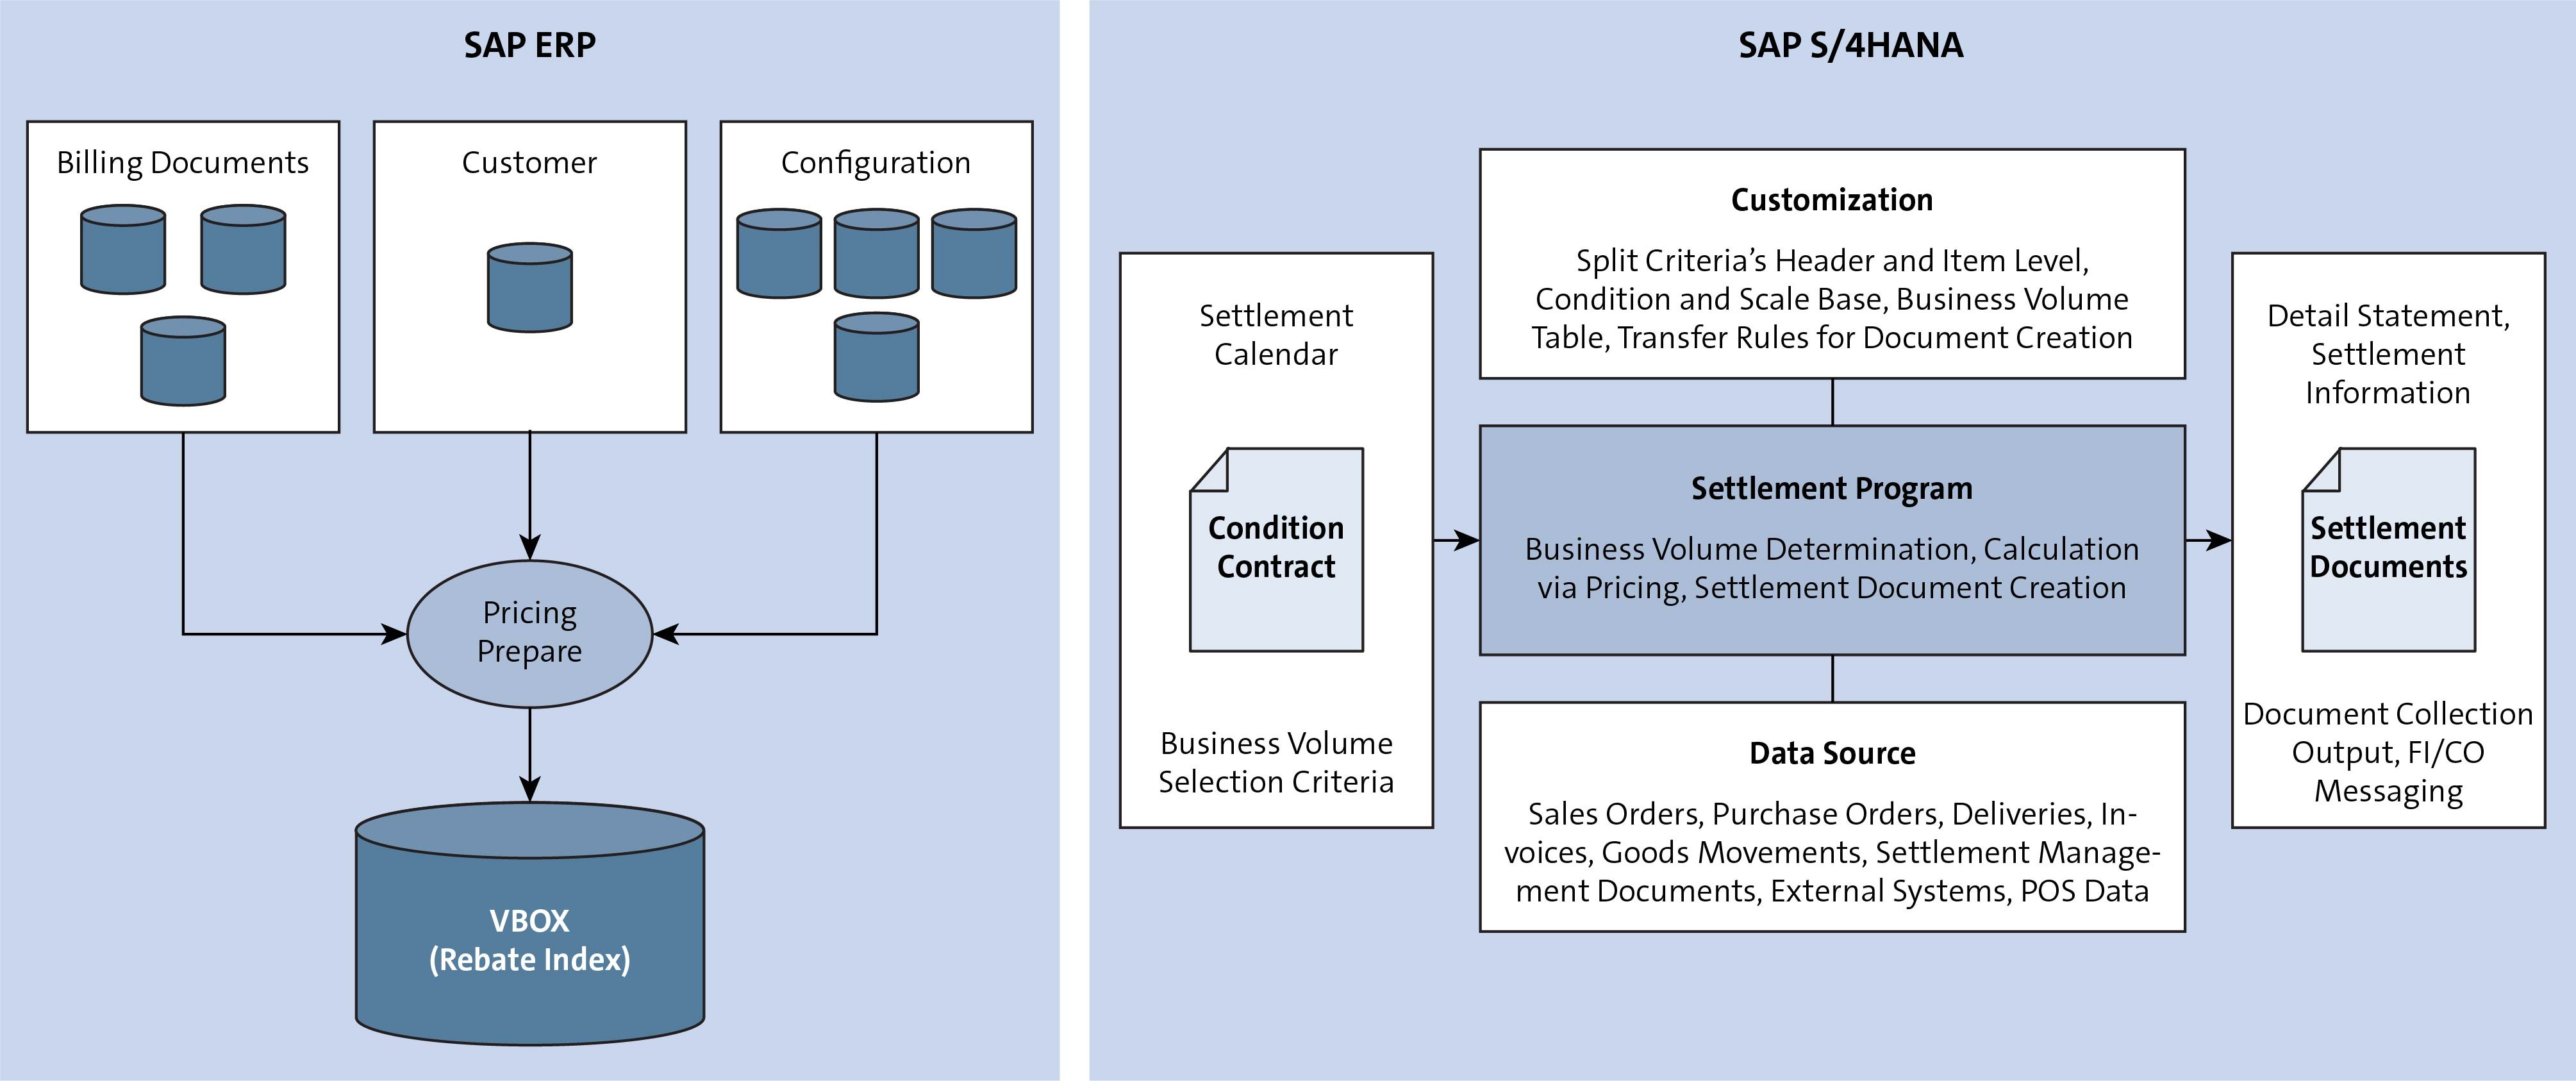 SAP Rebate Agreement Condition Control Settlement